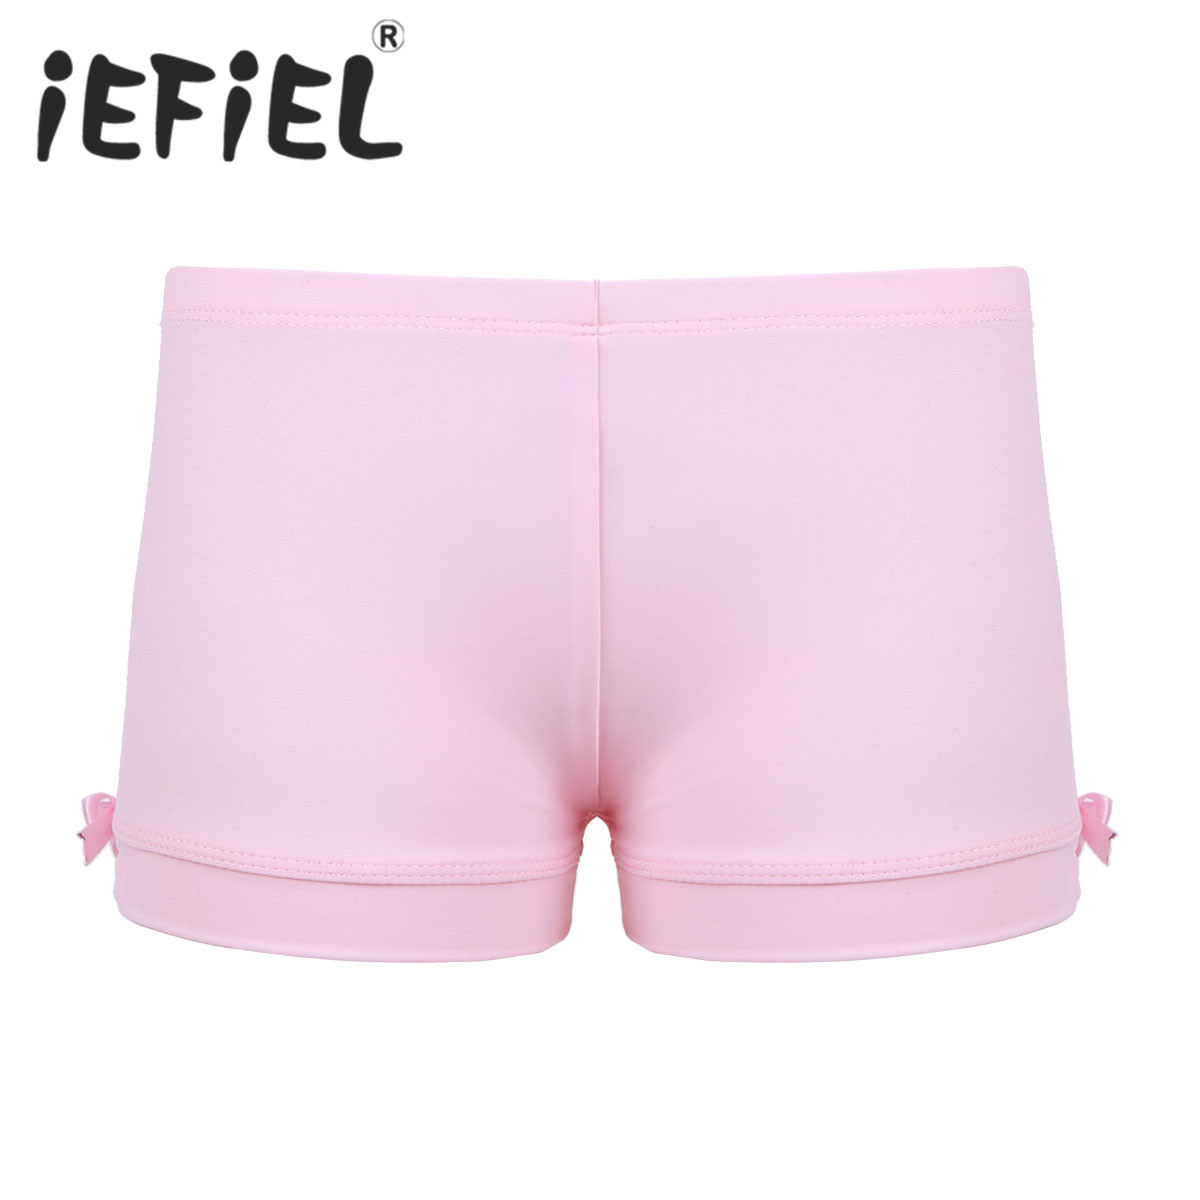 Kids Girls Children Ballet Shorts Elastic Waistband Shorts Bottoms for Sports Gym Workout Gymnastics Leotard Dancing Clothes